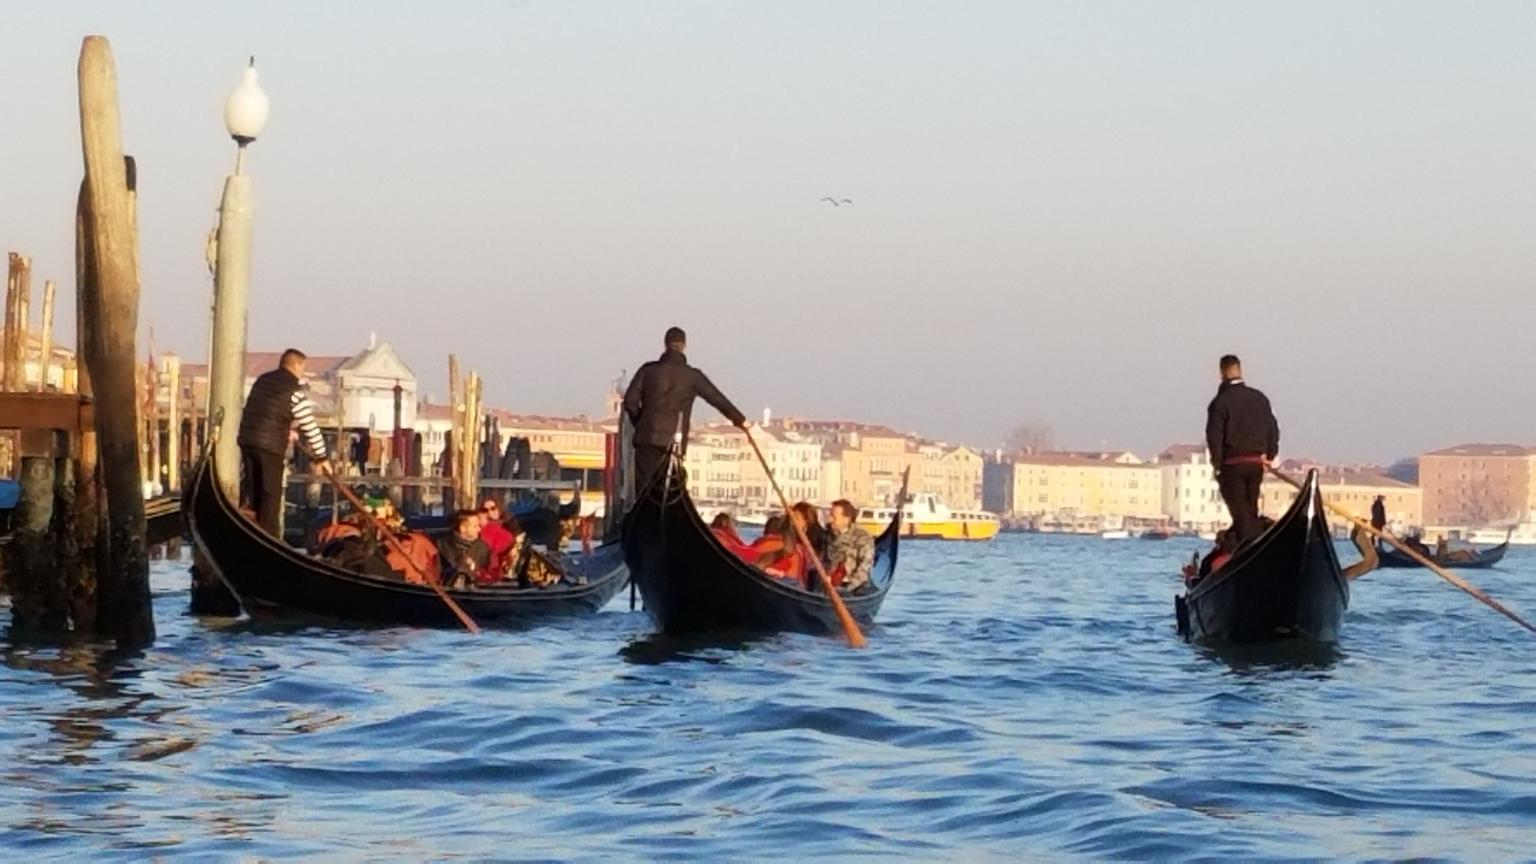 MORE PHOTOS, Venice Gondola Ride